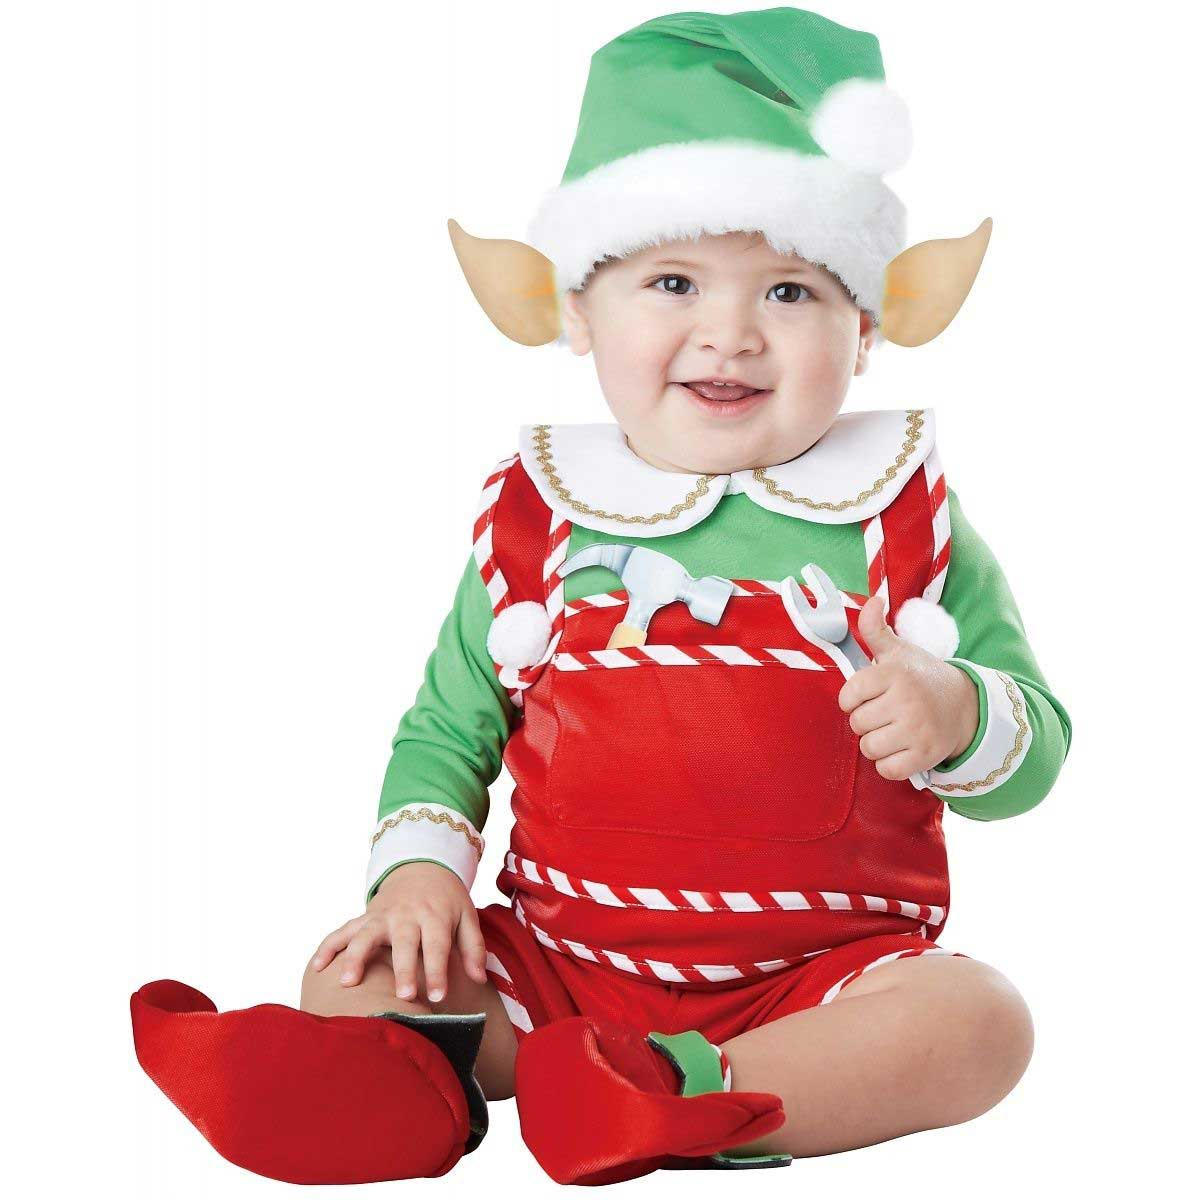 Christmas dresses for kids - Cute Christmas Dresses For Kids Toddler Christmas Outfits Best Dresses For Kids